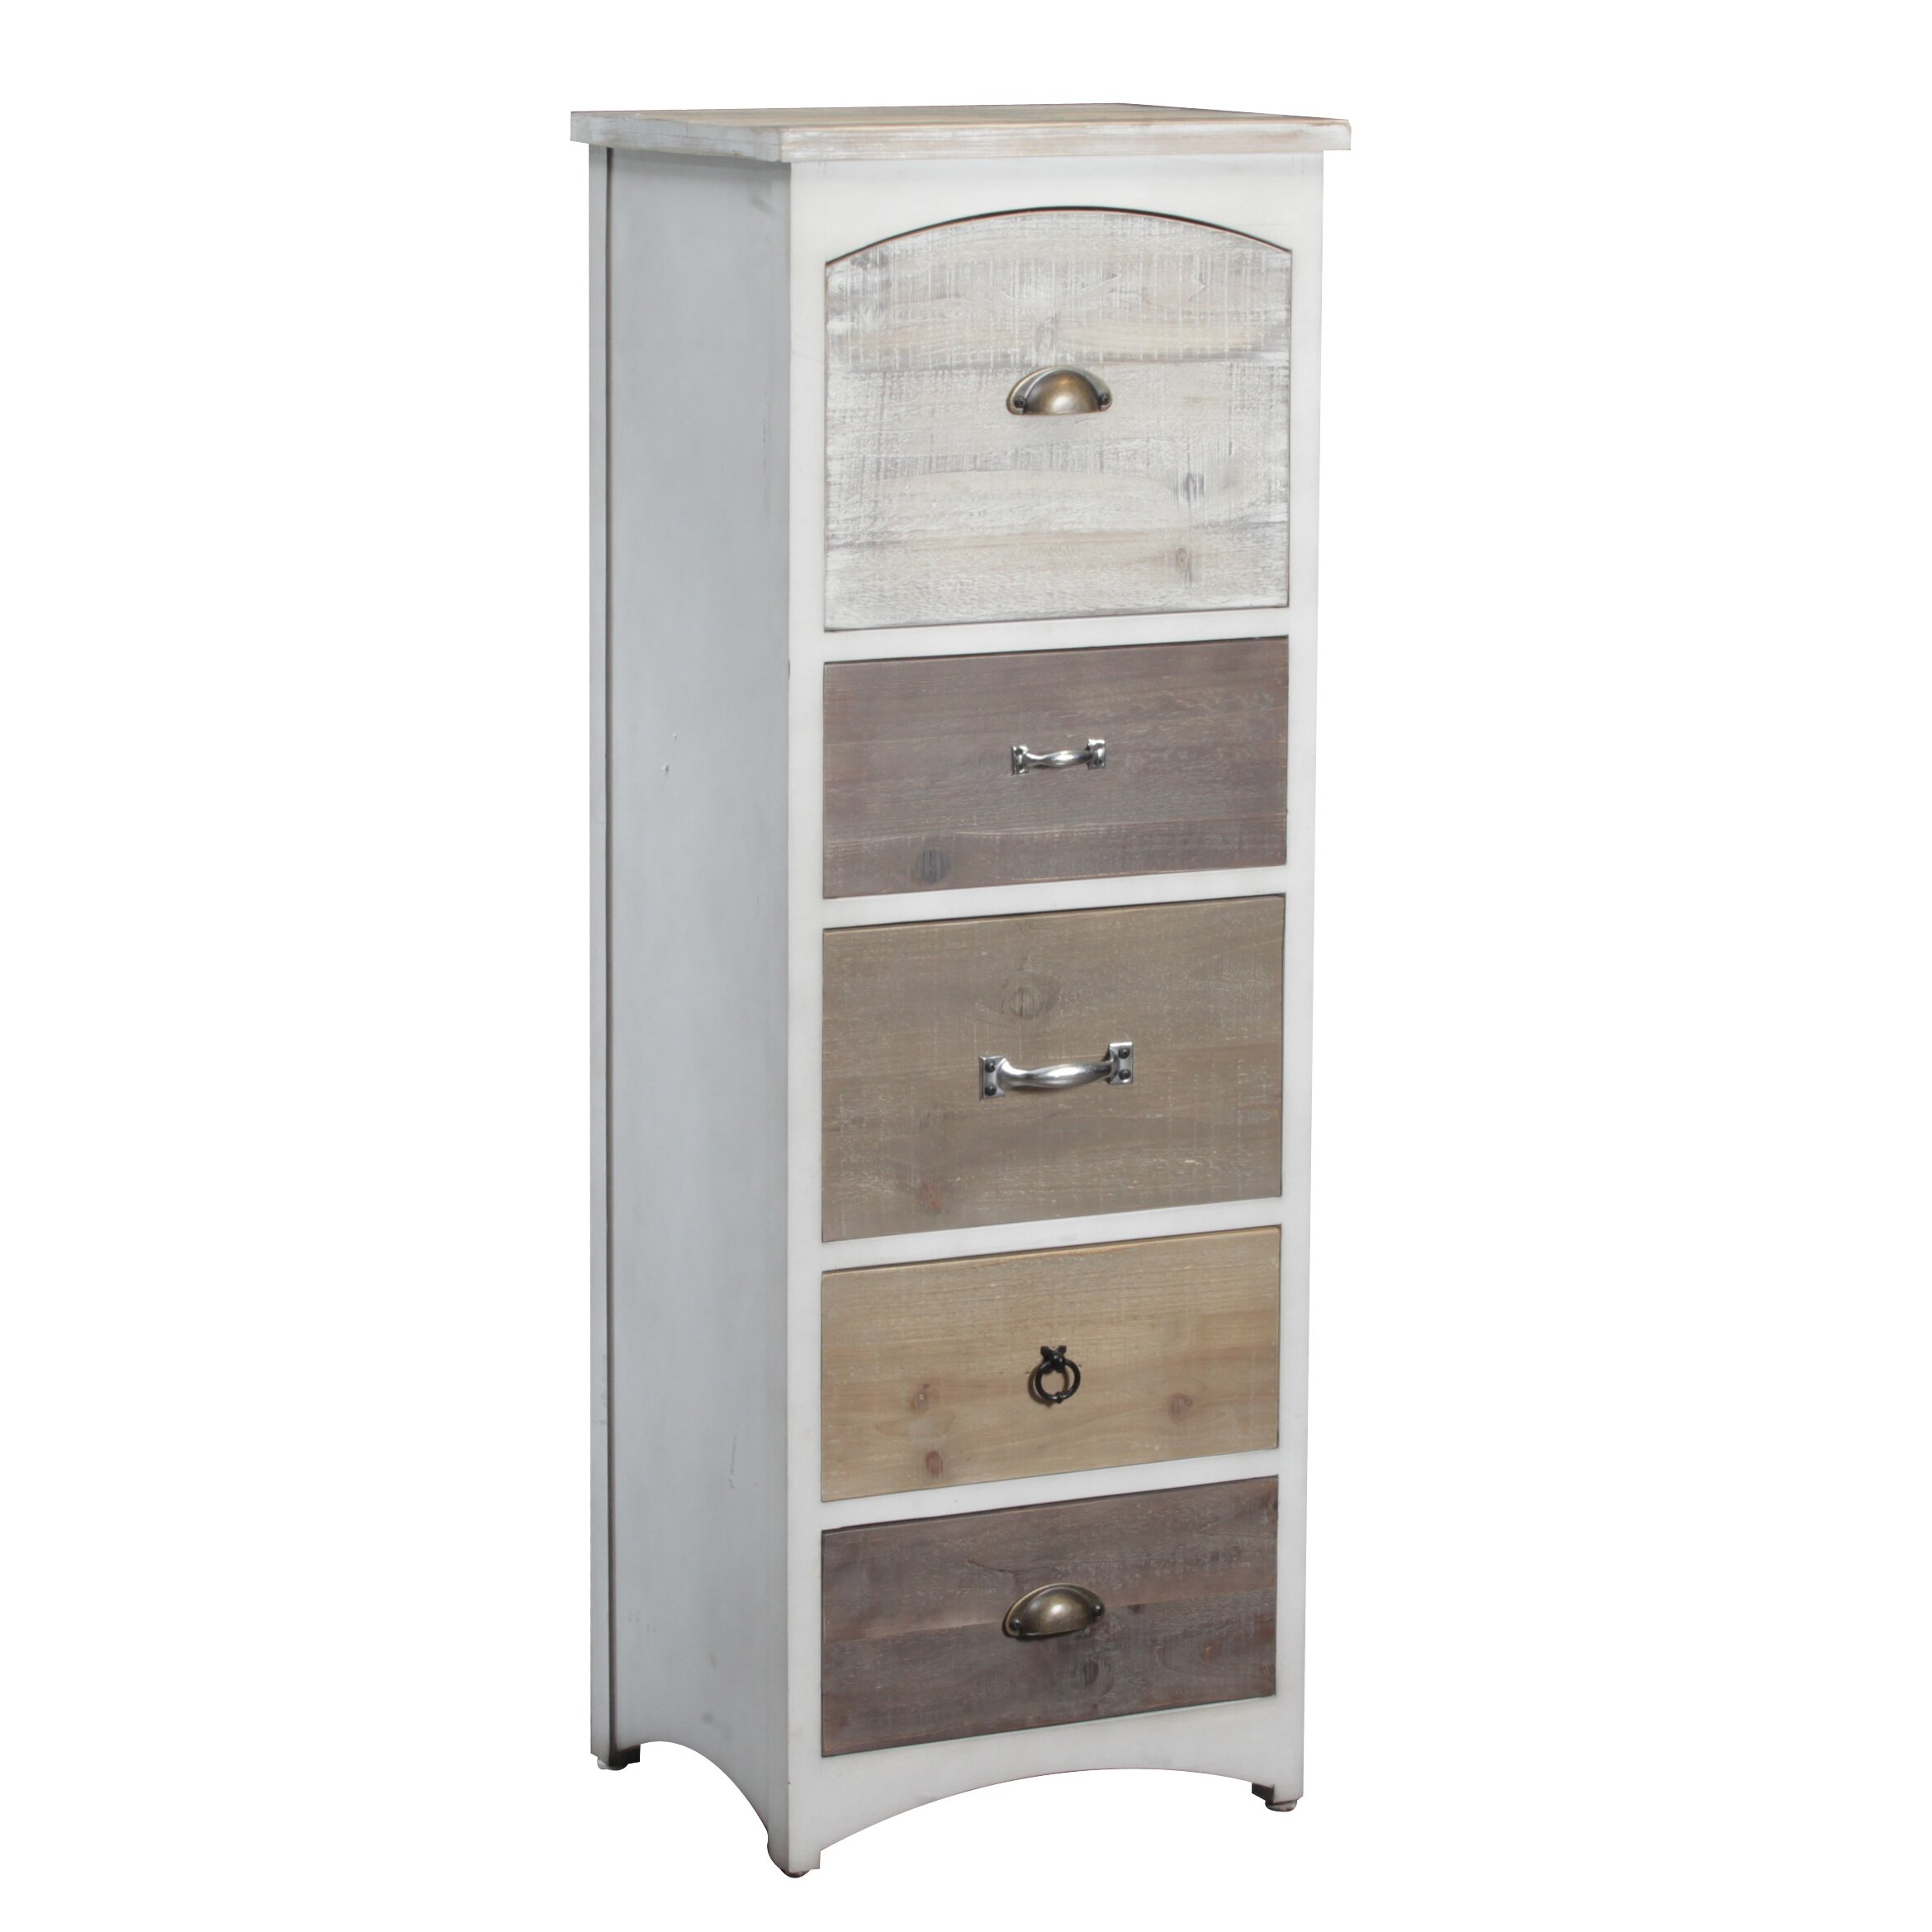 Andover Mills reg  Brighton Tall 5 Drawer Lingerie Chest. Andover Mills Brighton Tall 5 Drawer Lingerie Chest   Reviews